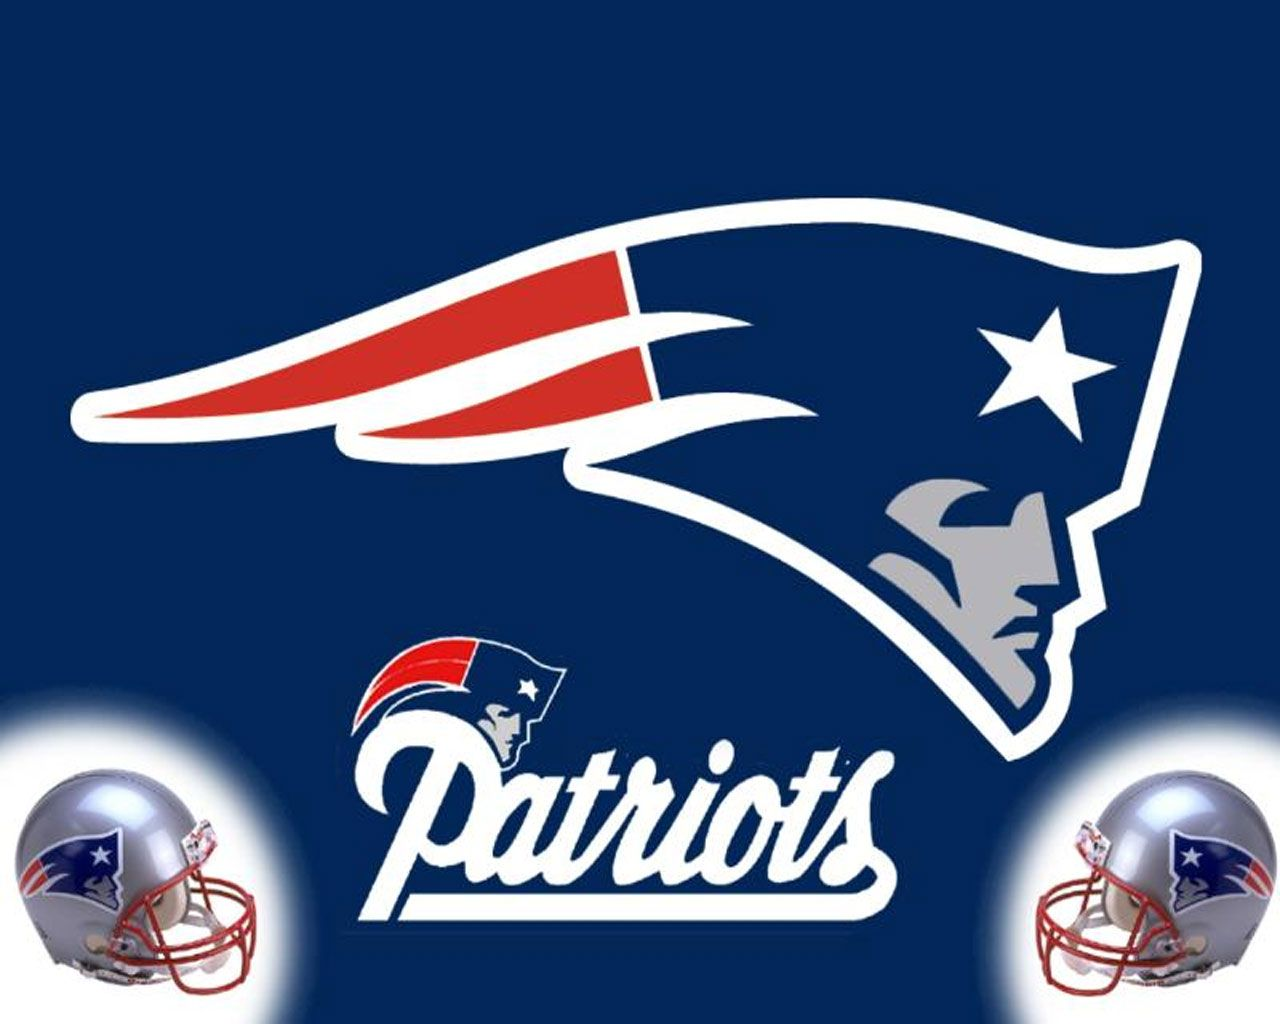 Ne Patriots Logo Printable Free Yahoo Search Results Yahoo Image Search Results New England Patriots Logo Patriots Logo Patriots Team